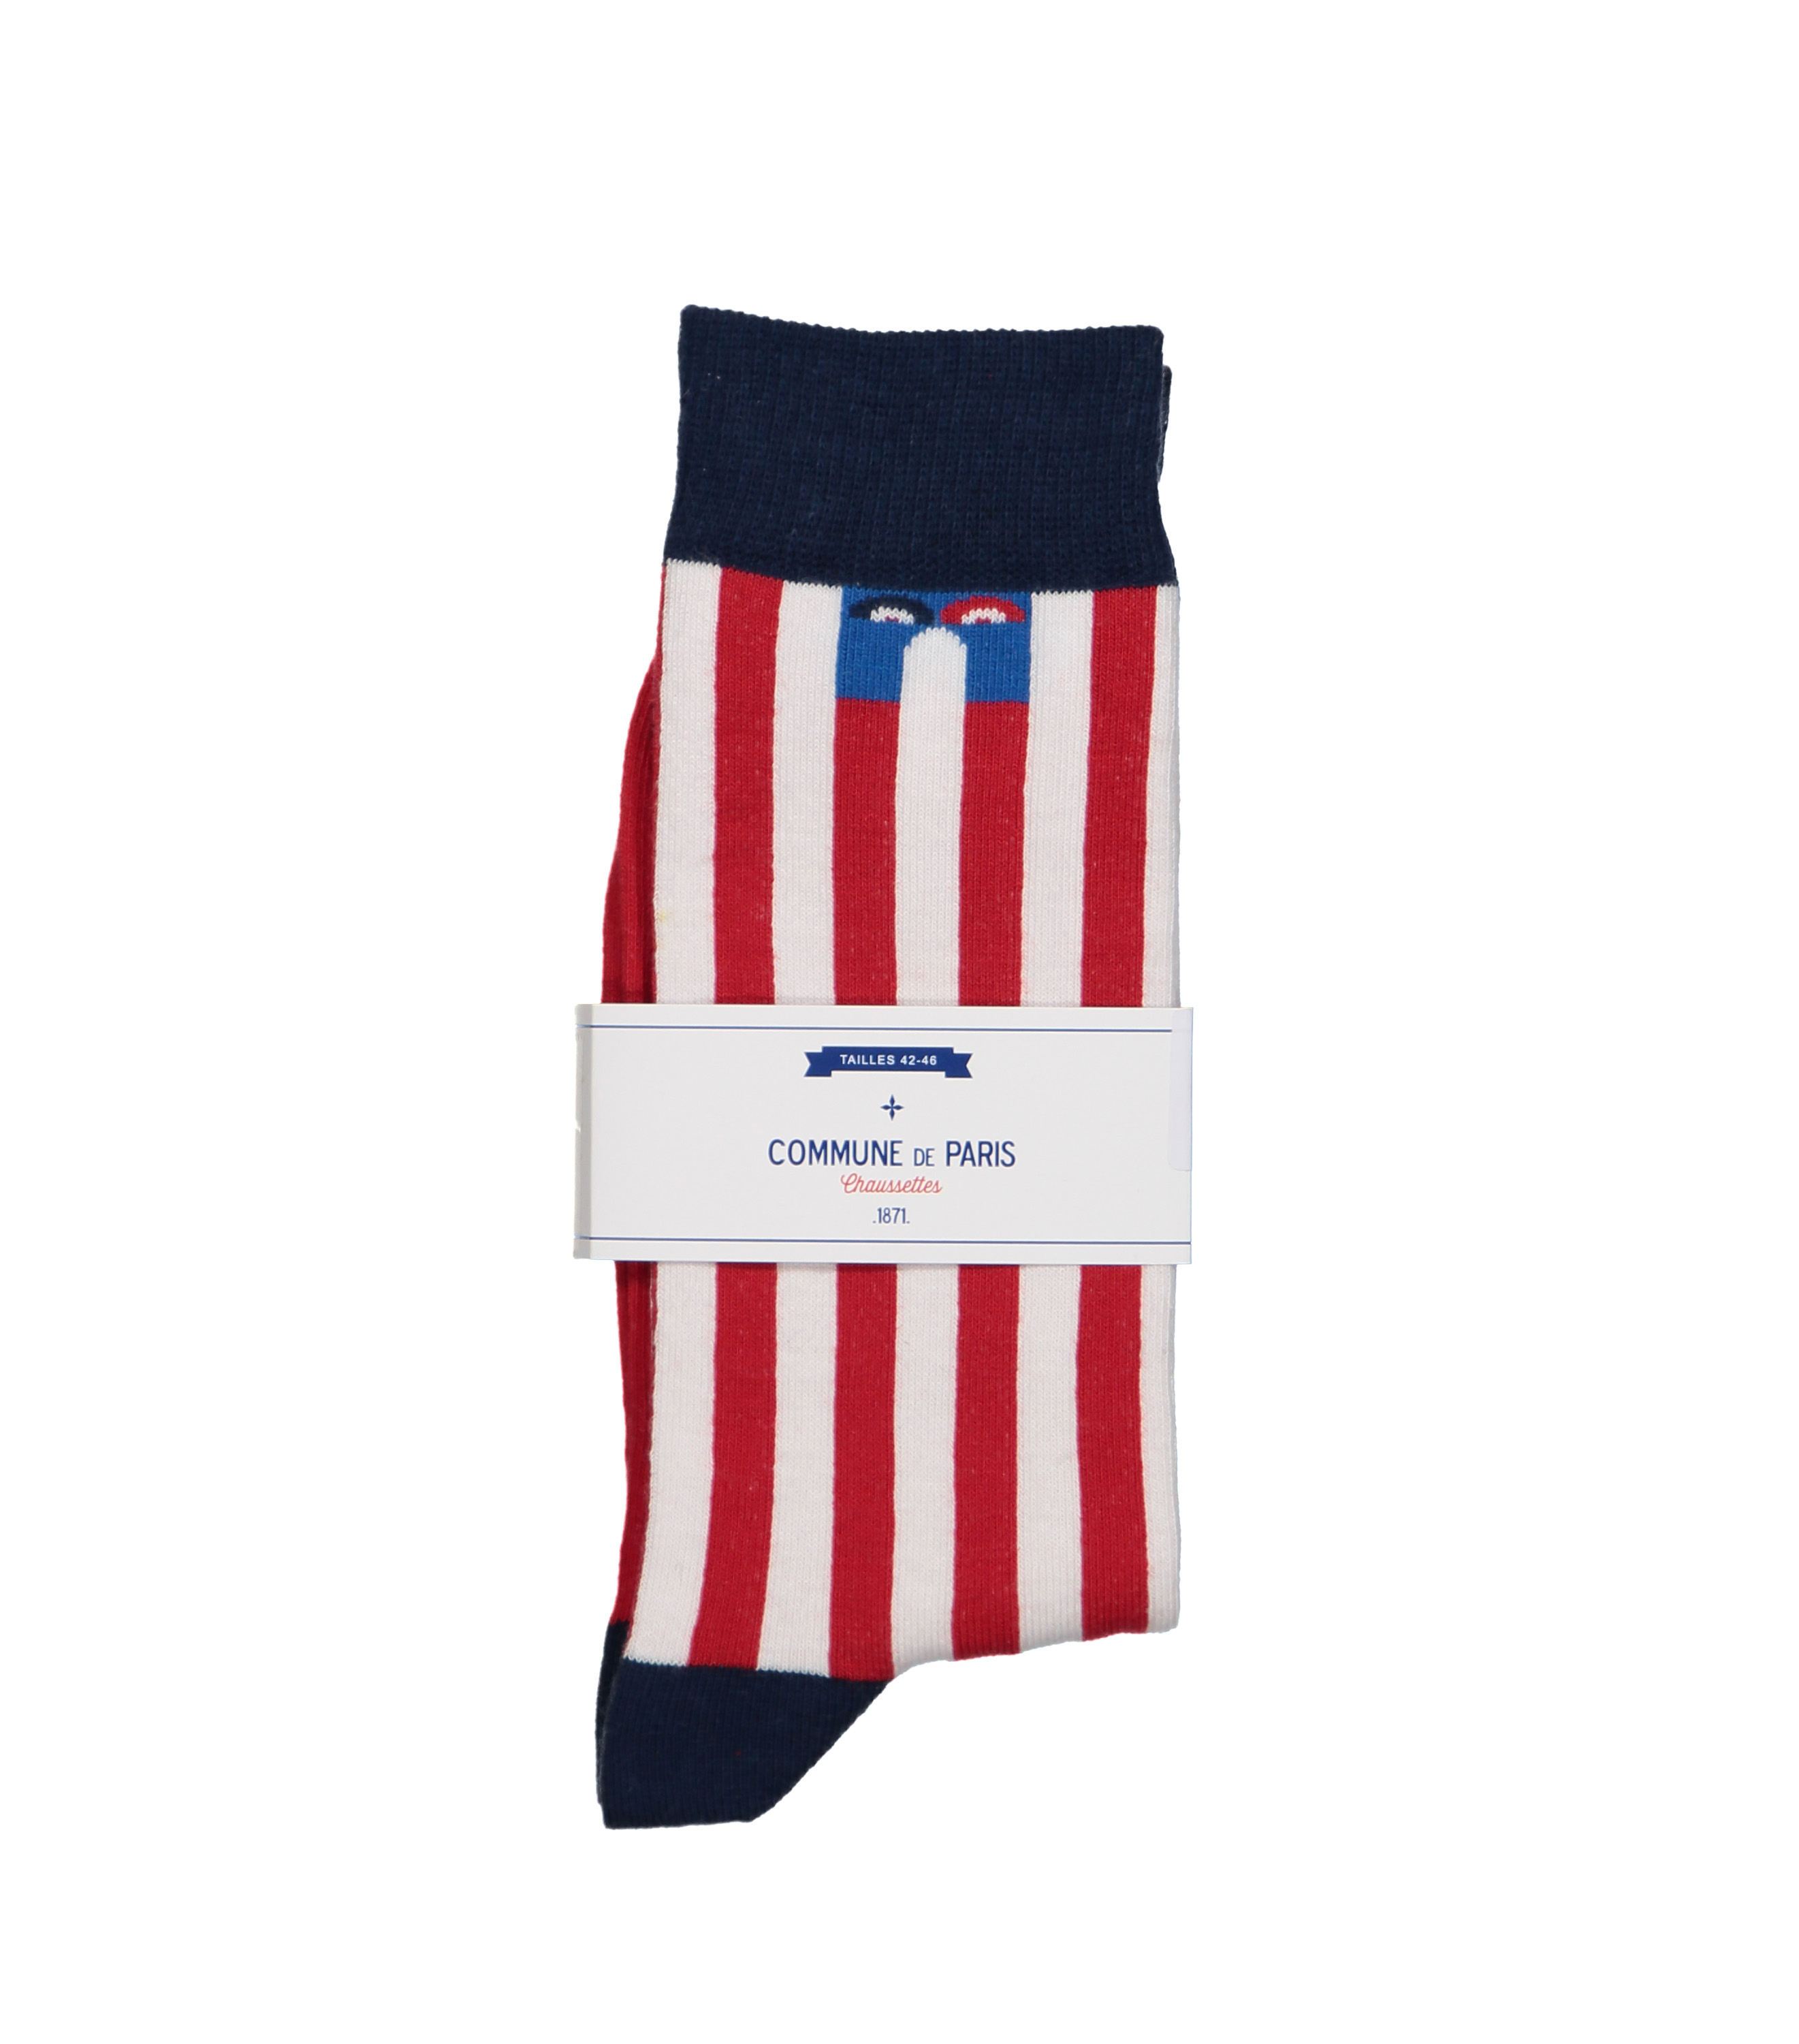 CHAUSSETTES ECHASSES  - Rayures rouges